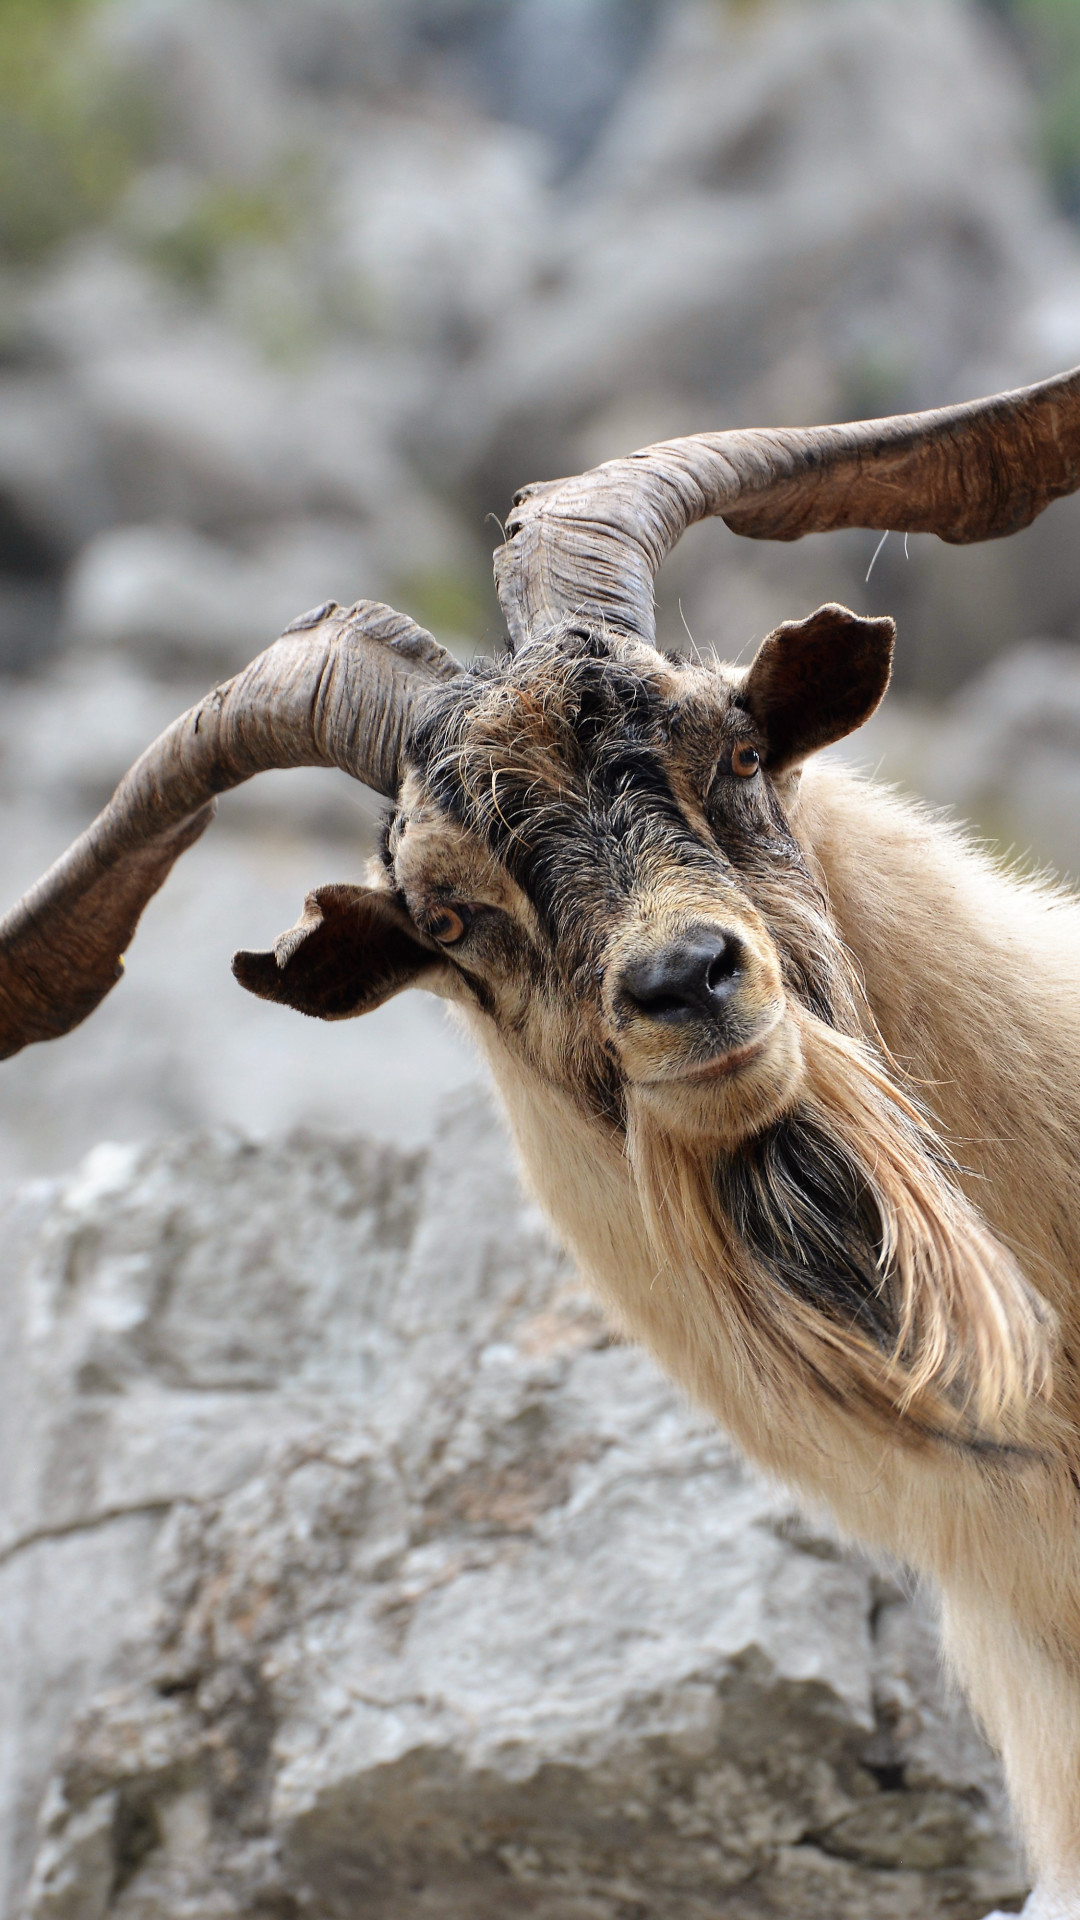 Goat Wallpapers 64+ images